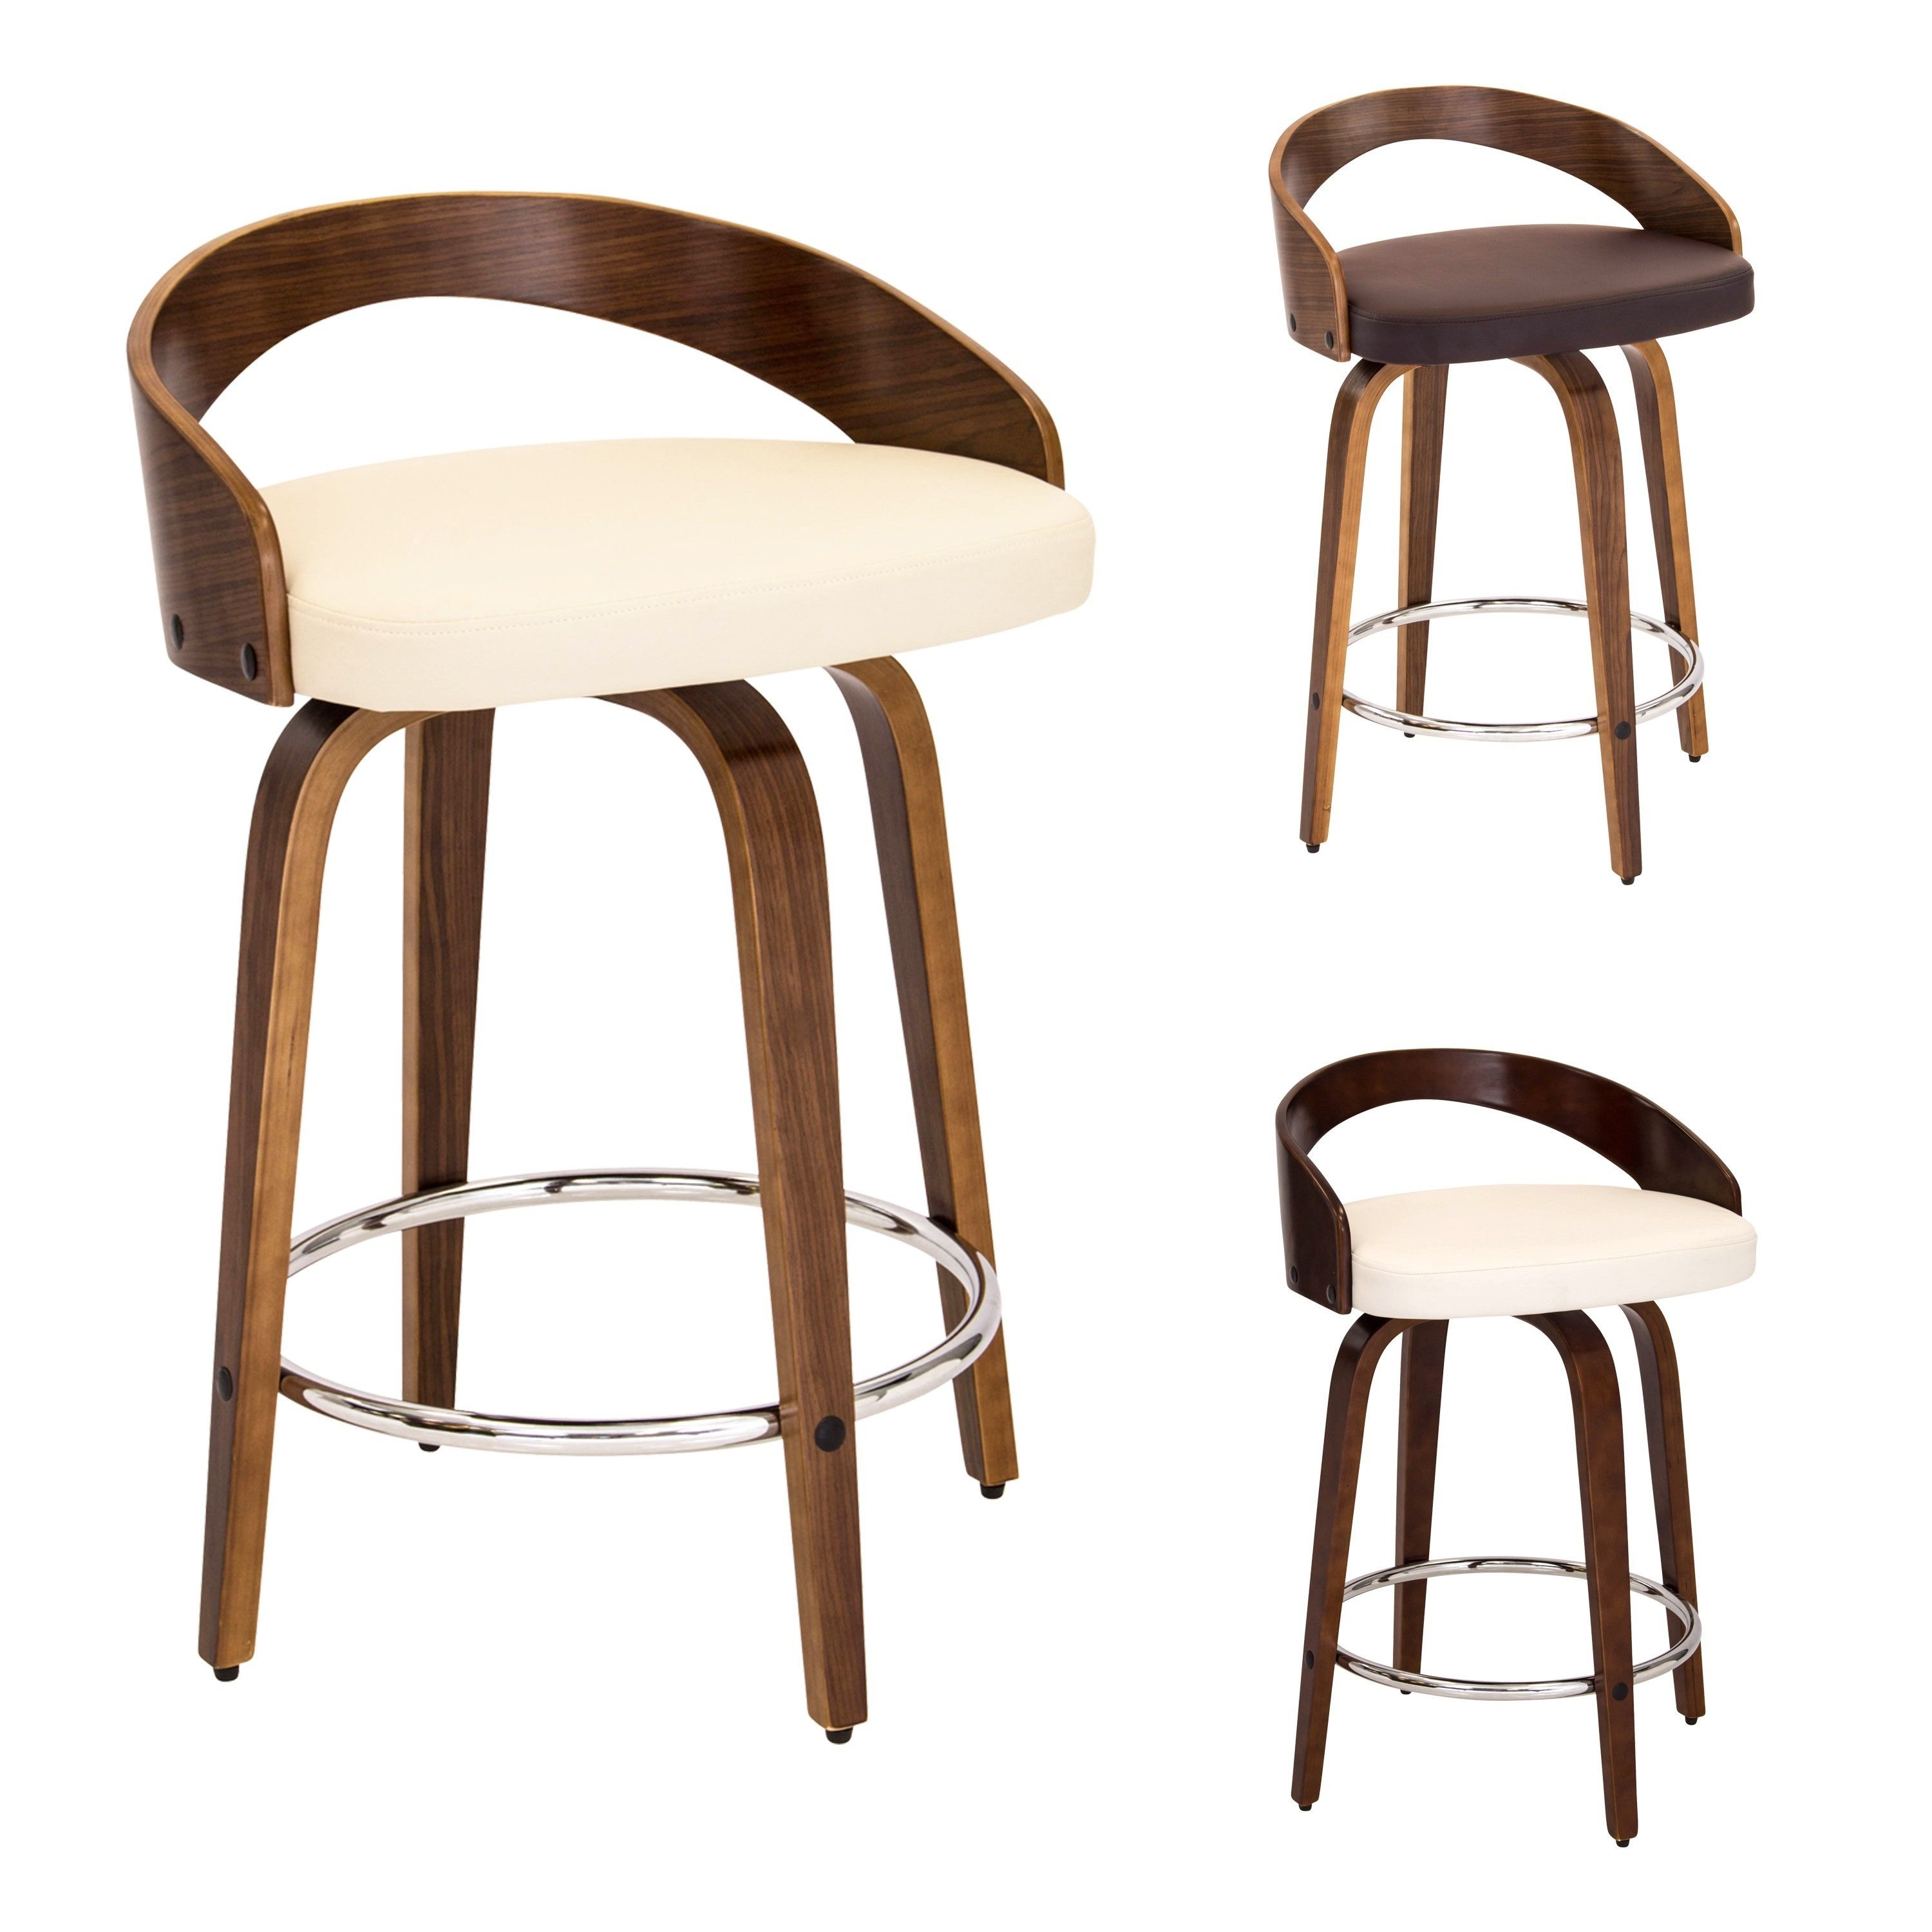 lumisource grotto faux leather midcentury modern counter stool by lumisource